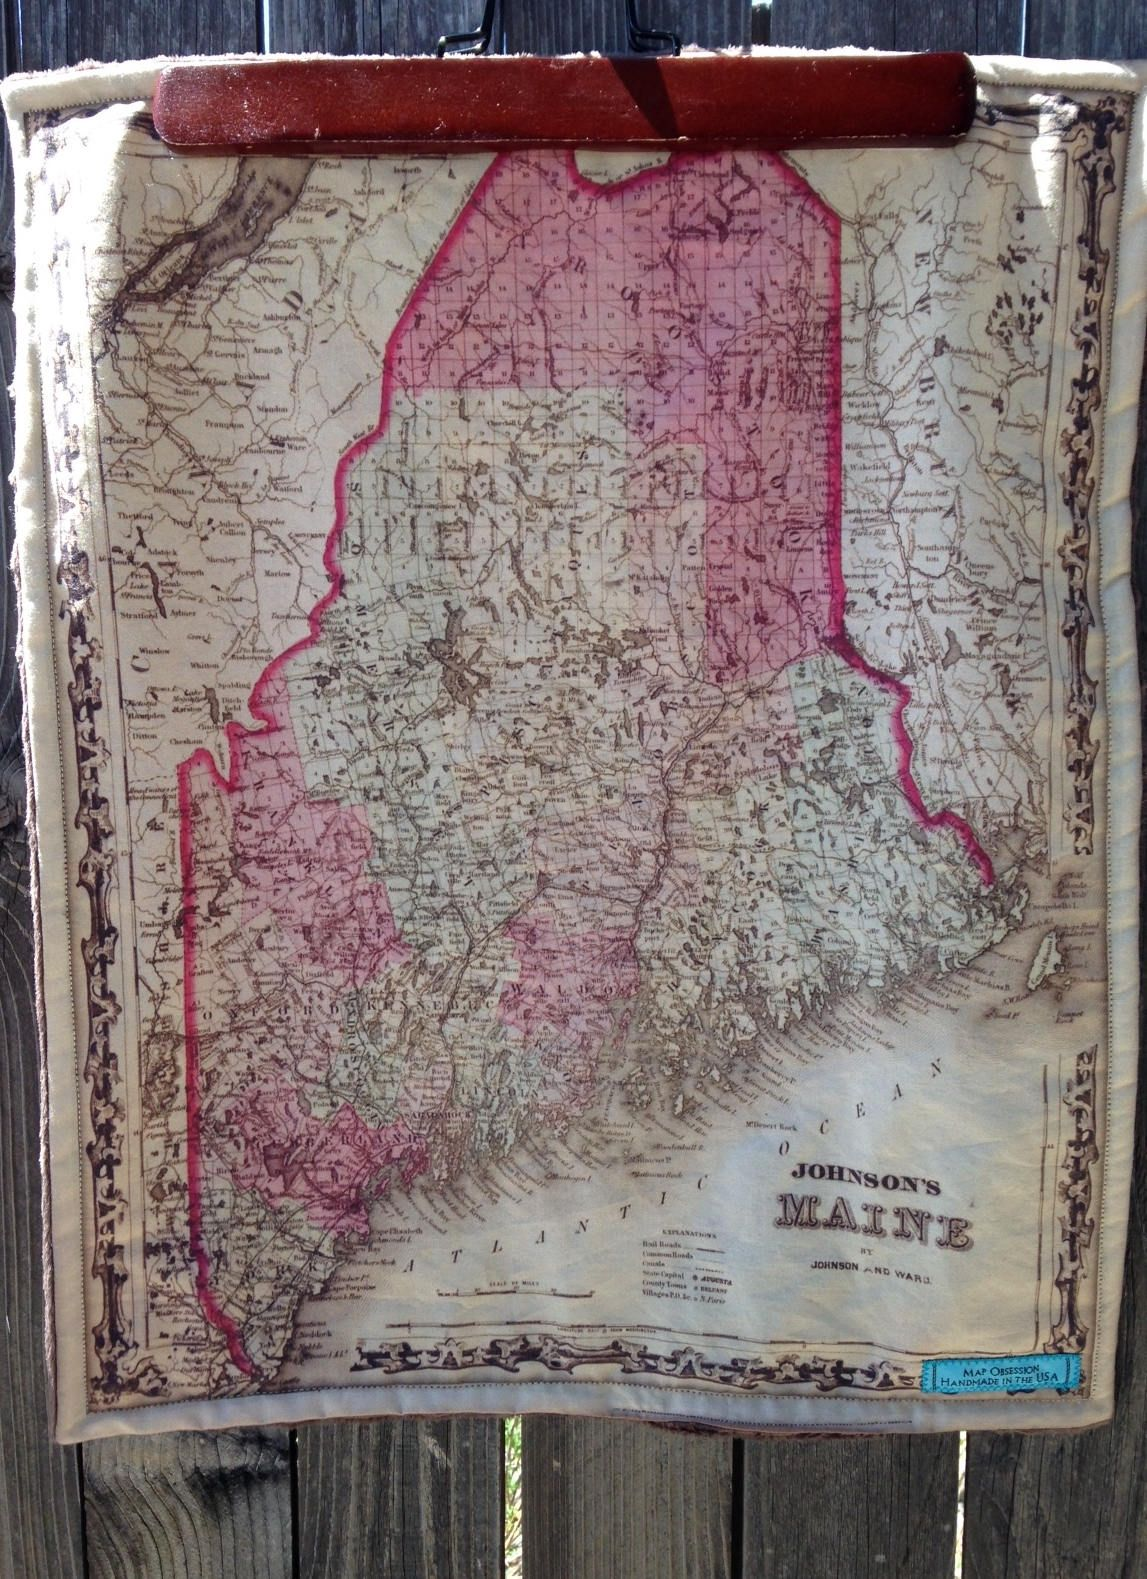 Maine map blanket me map baby minky security blankie small maine map blanket me map baby minky security blankie small travel blanky lovey woobie by 20 inch by mapobsession on etsy gumiabroncs Images